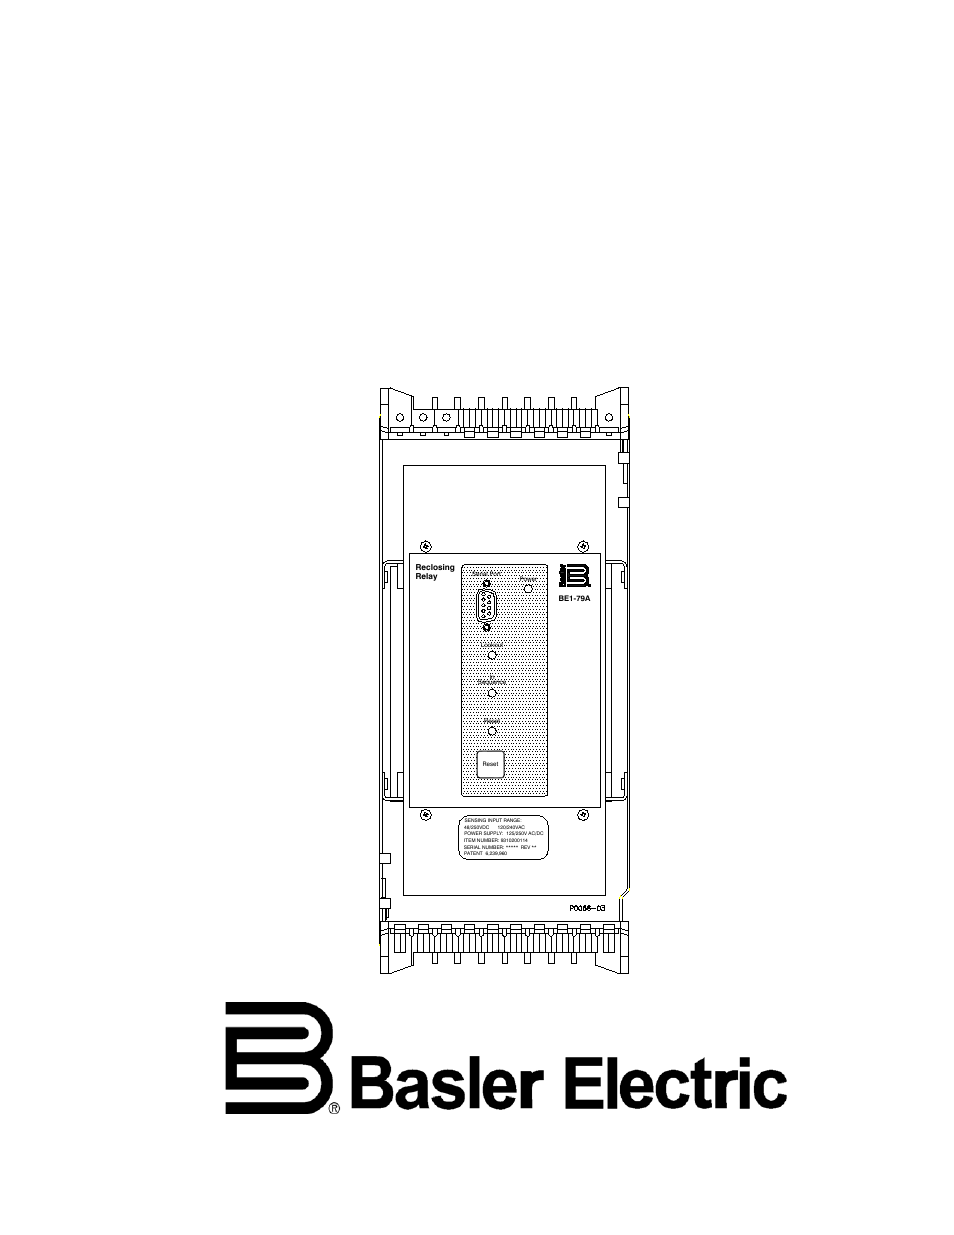 electric relay history